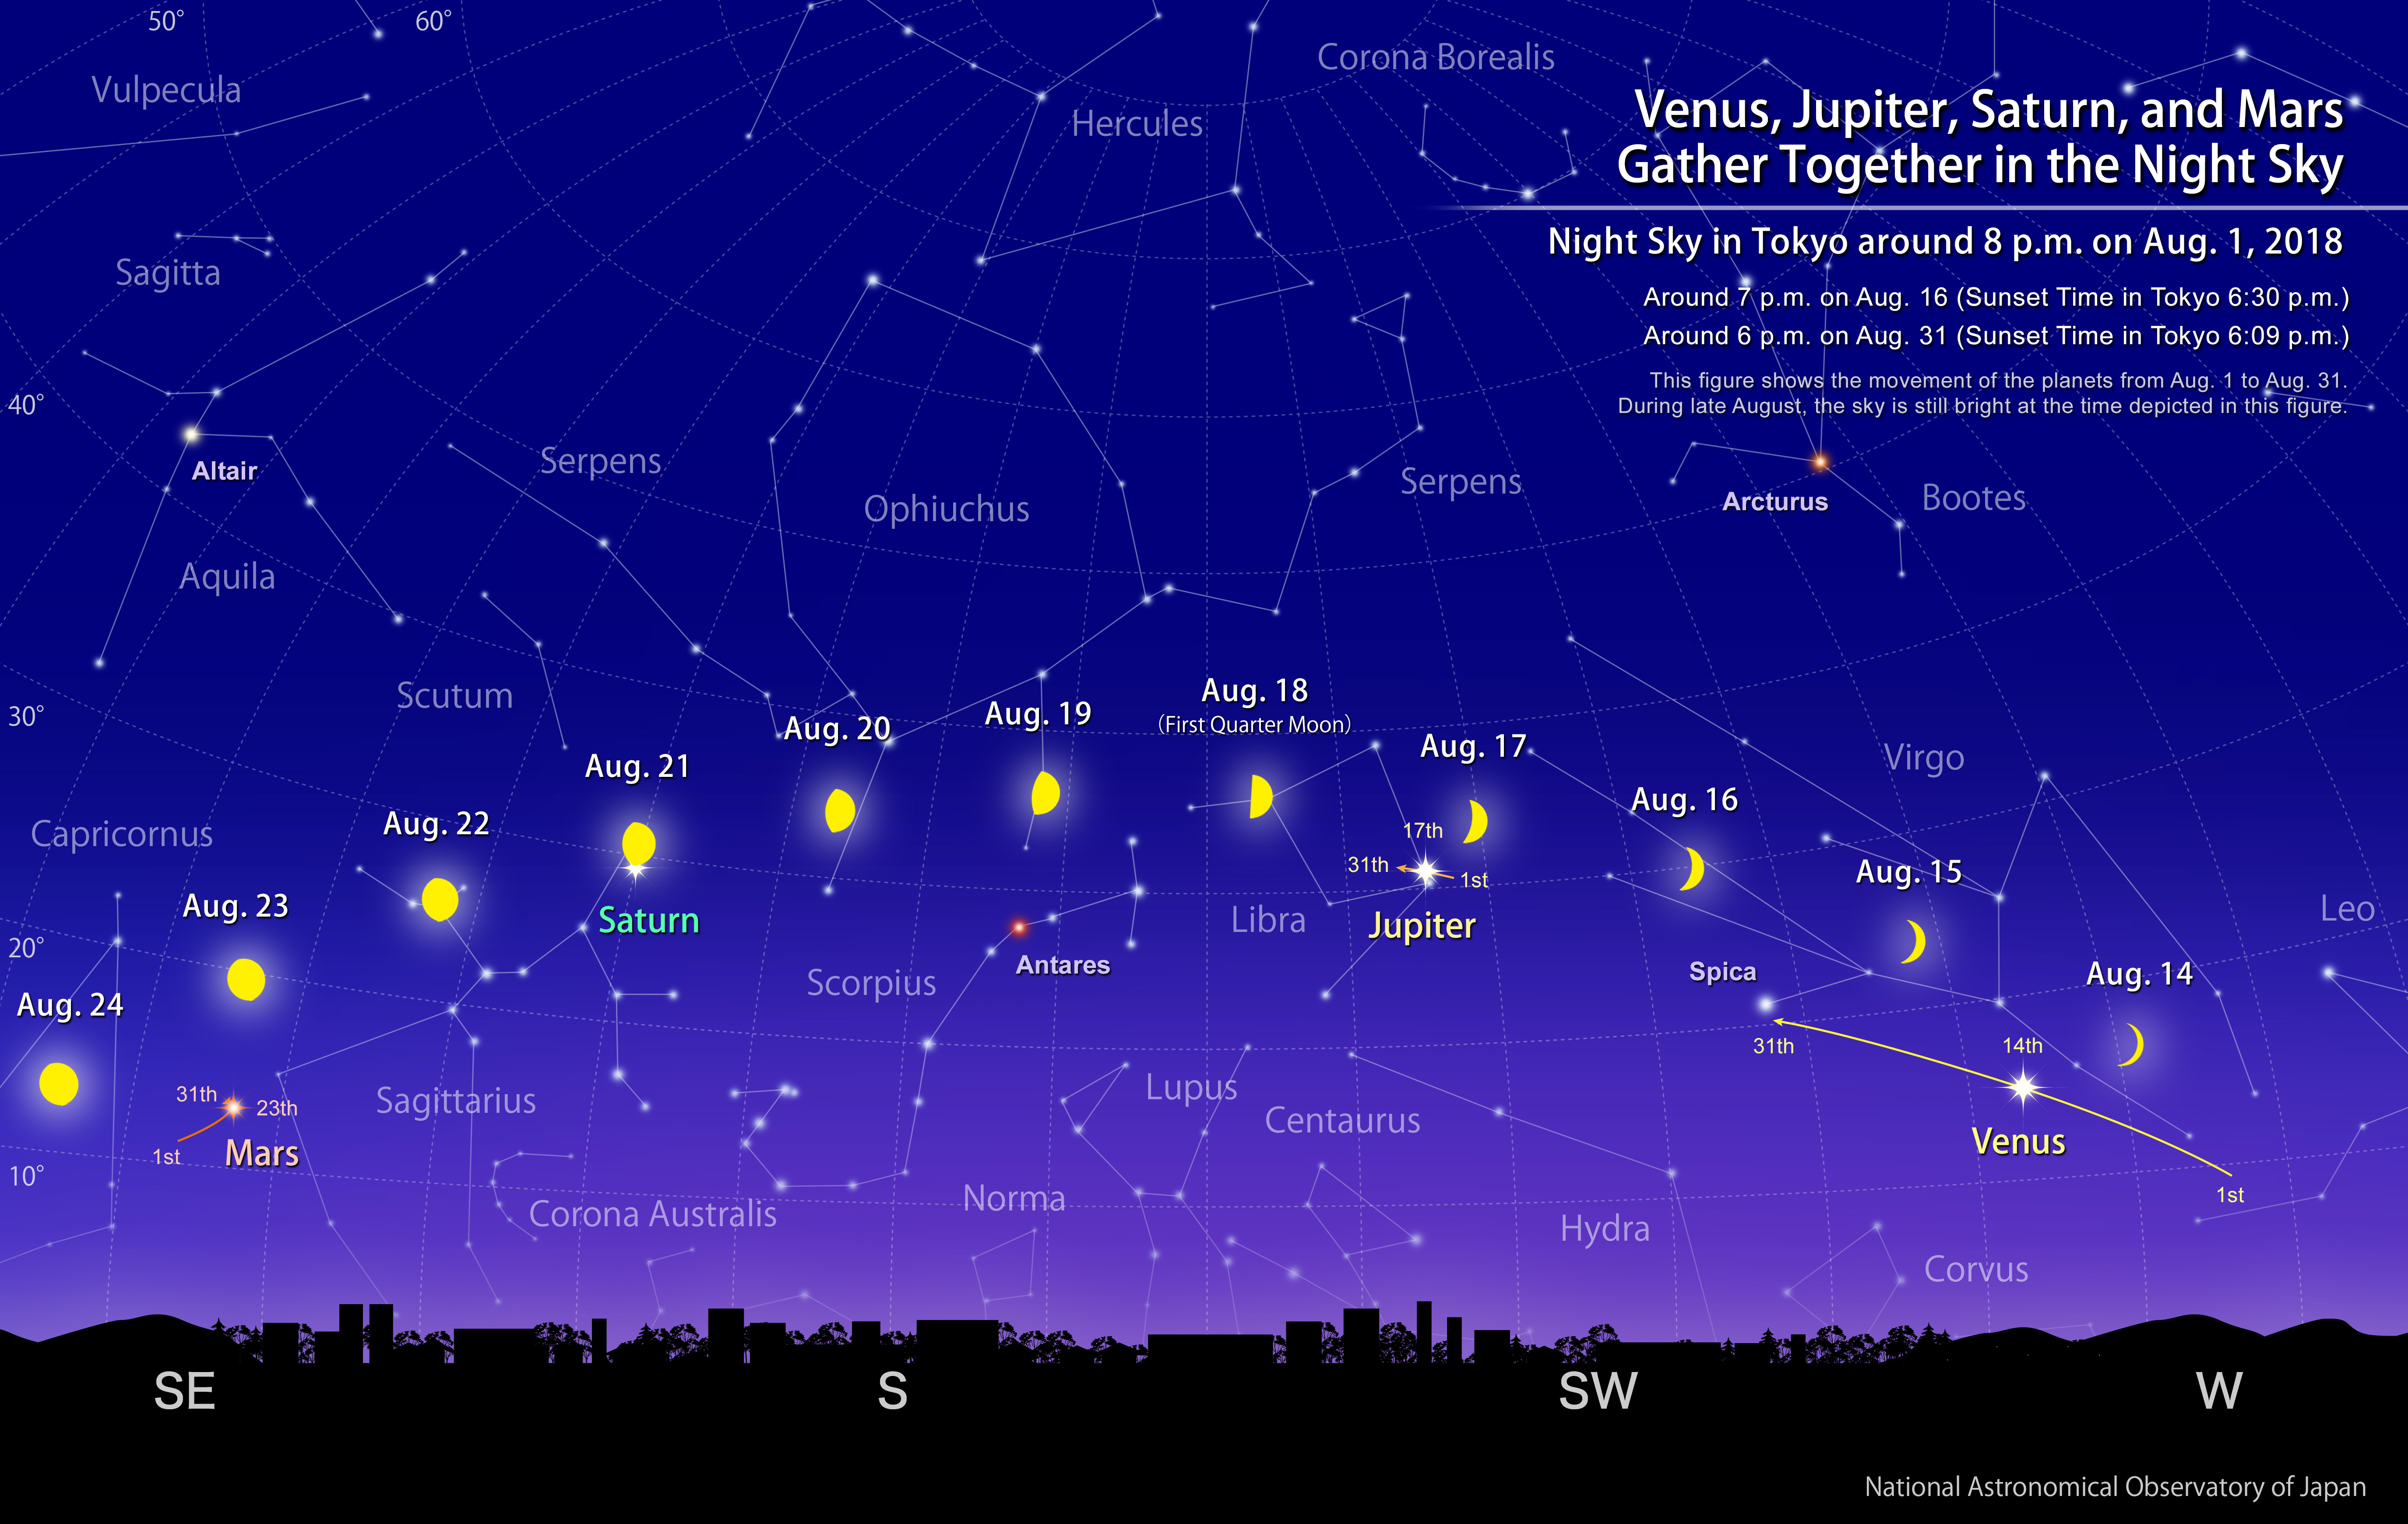 Venus, Jupiter, Saturn, and Mars Gather Together in the Night Sky